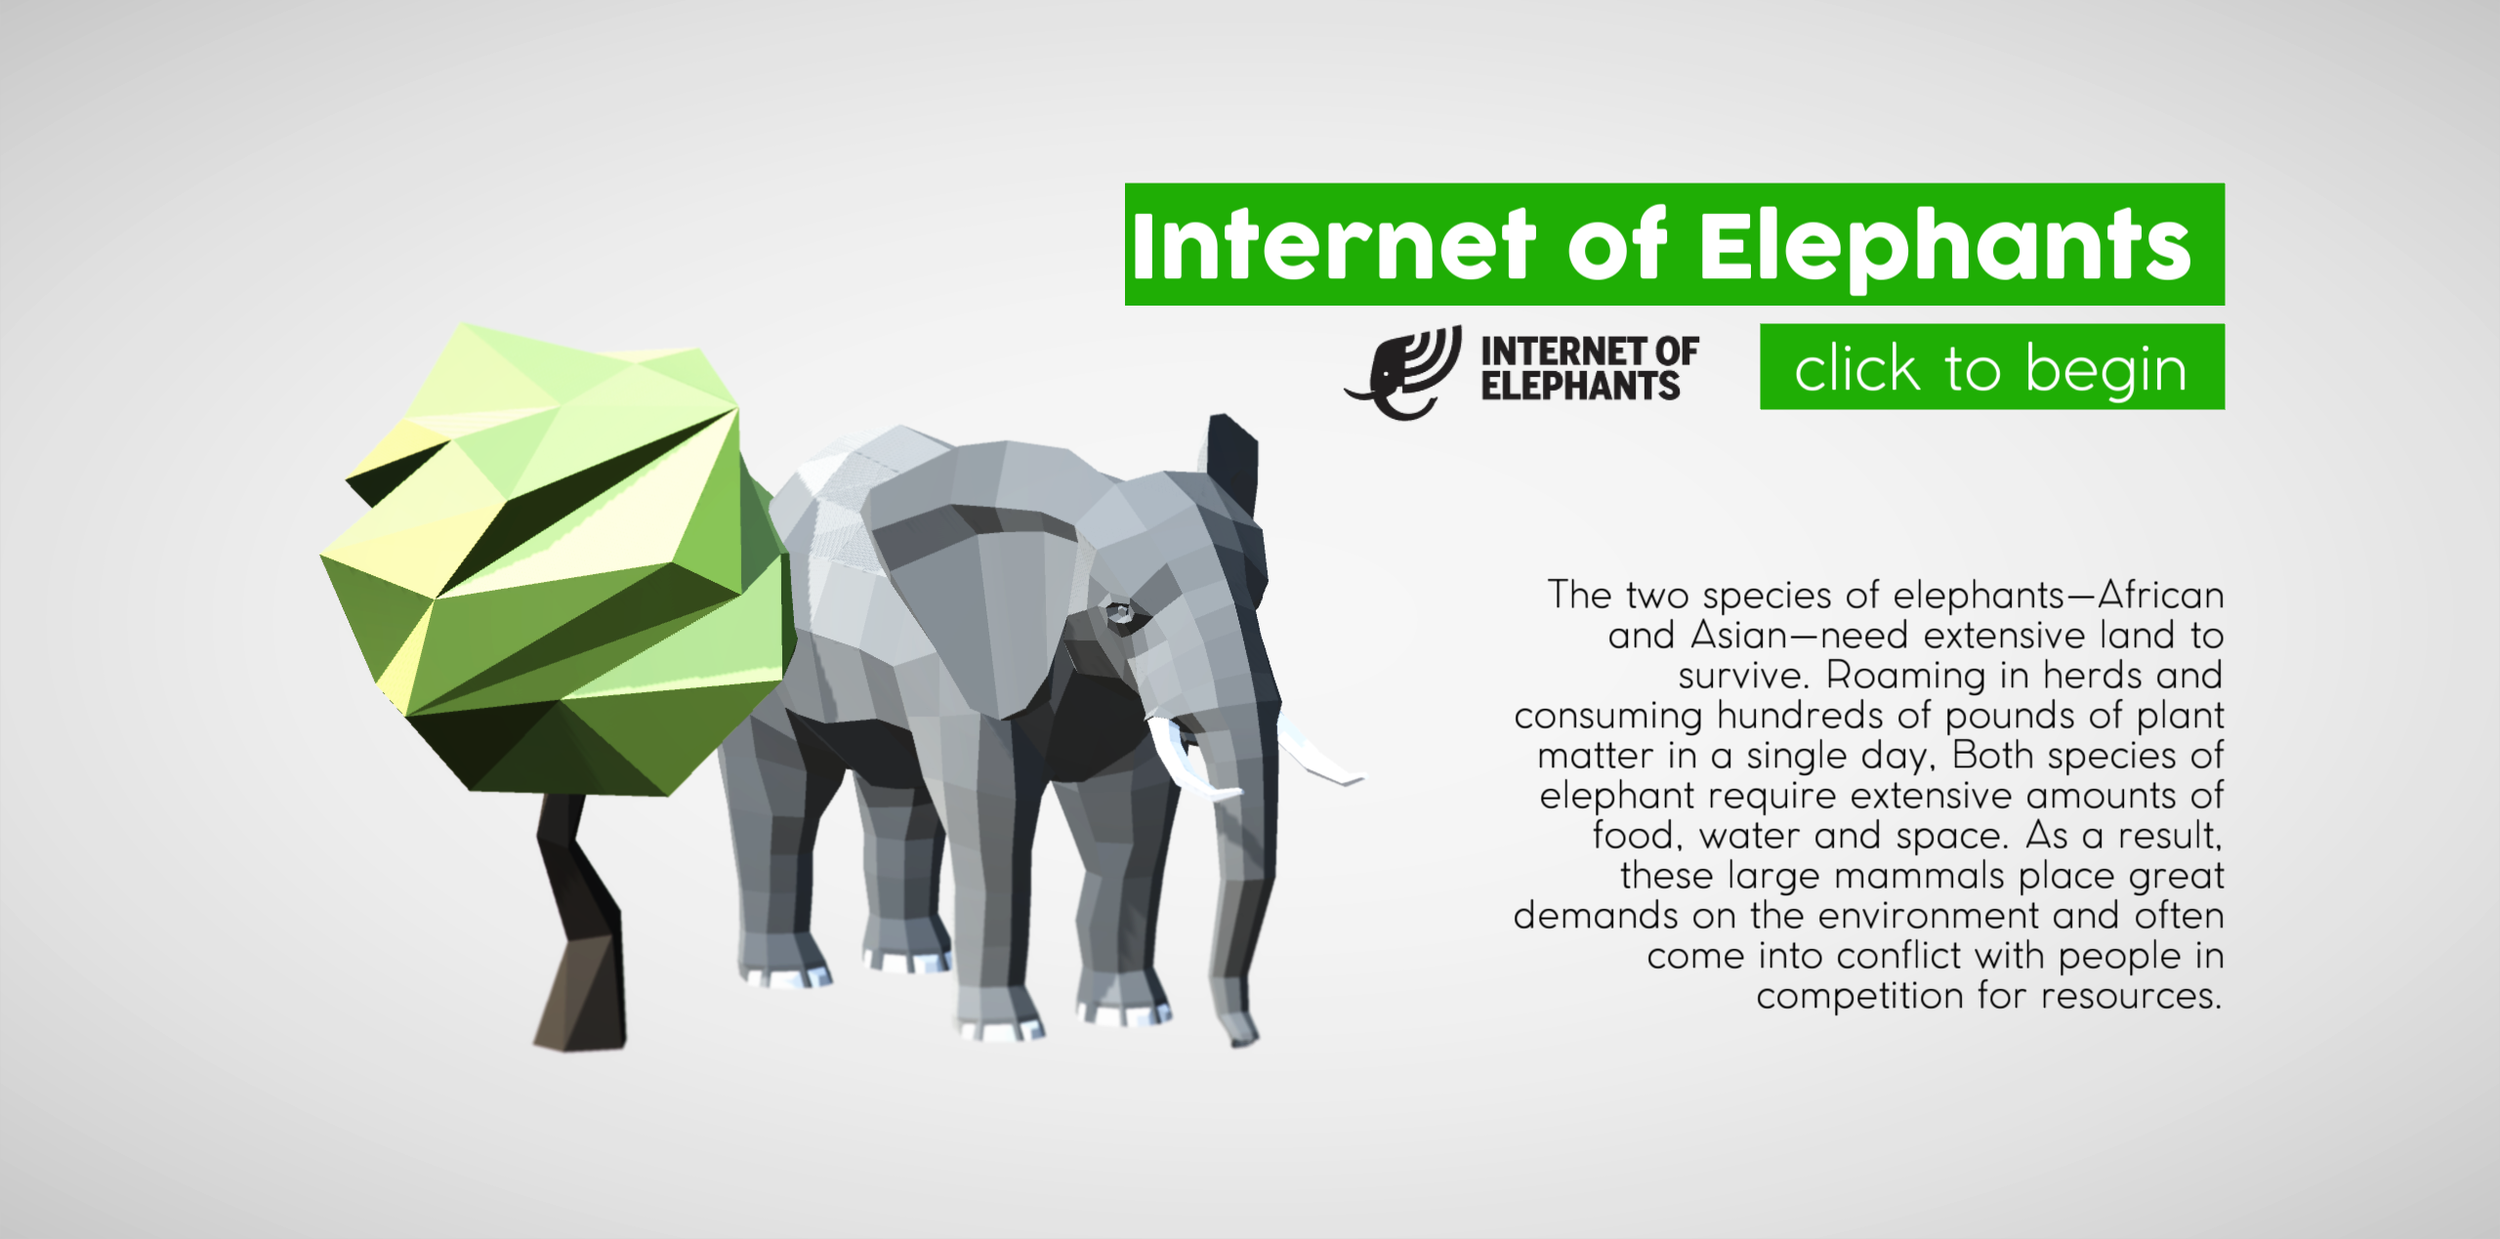 internet-of-elephants-01.png